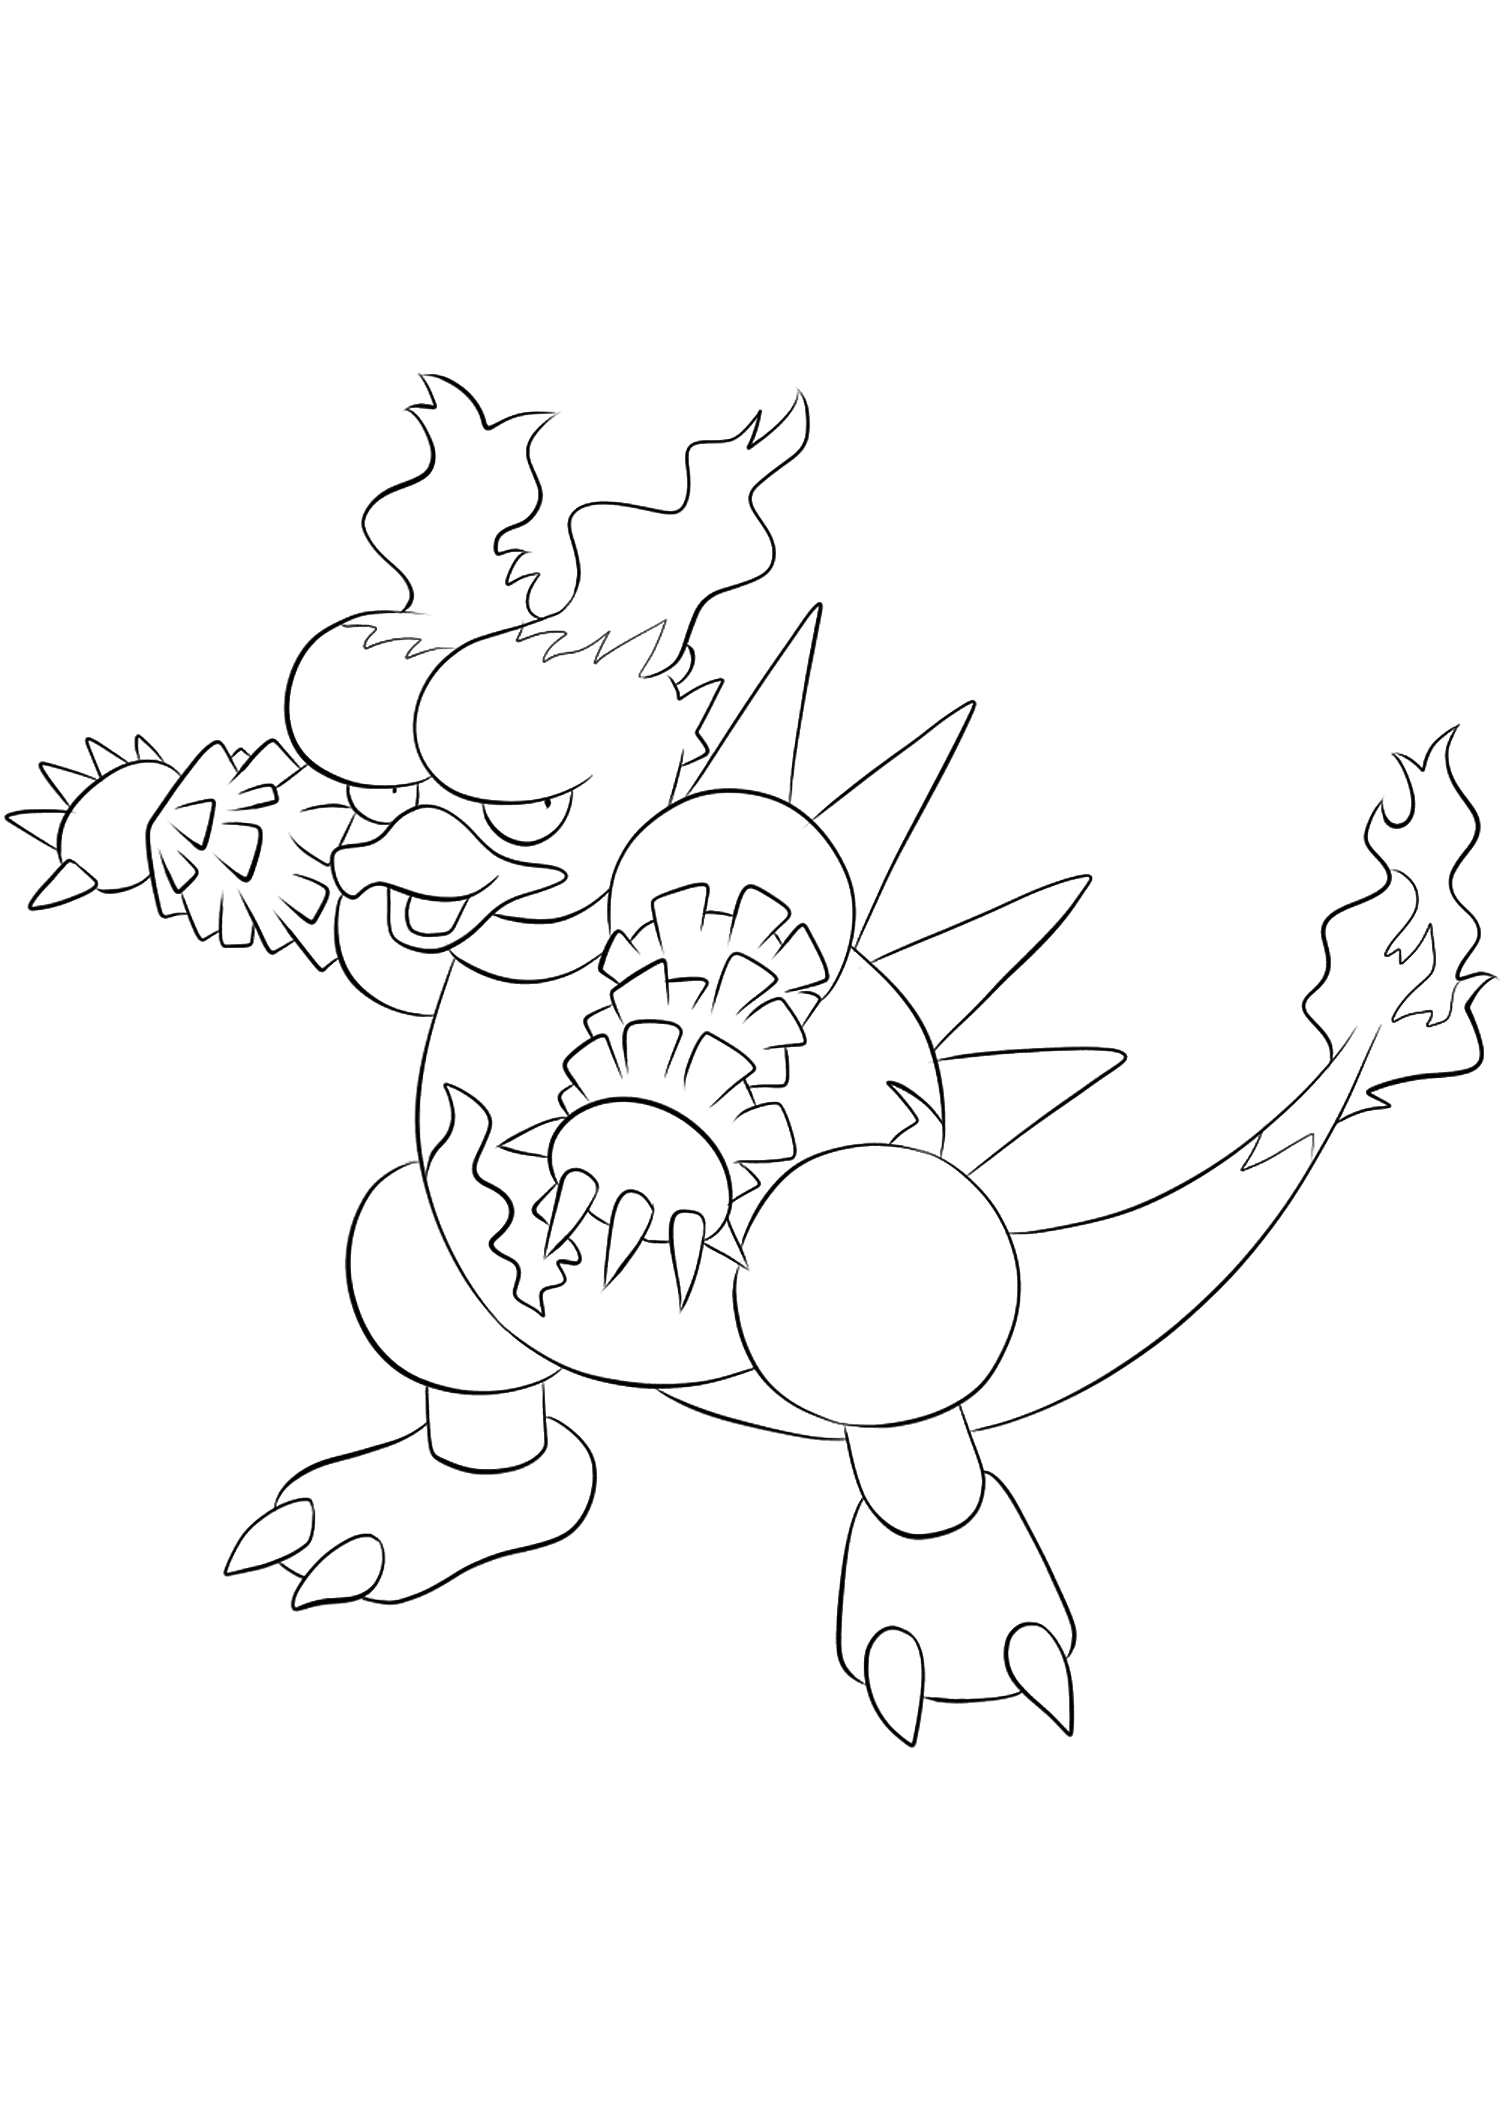 <b>Magmar</b> (No.126) : Pokemon (Generation I)